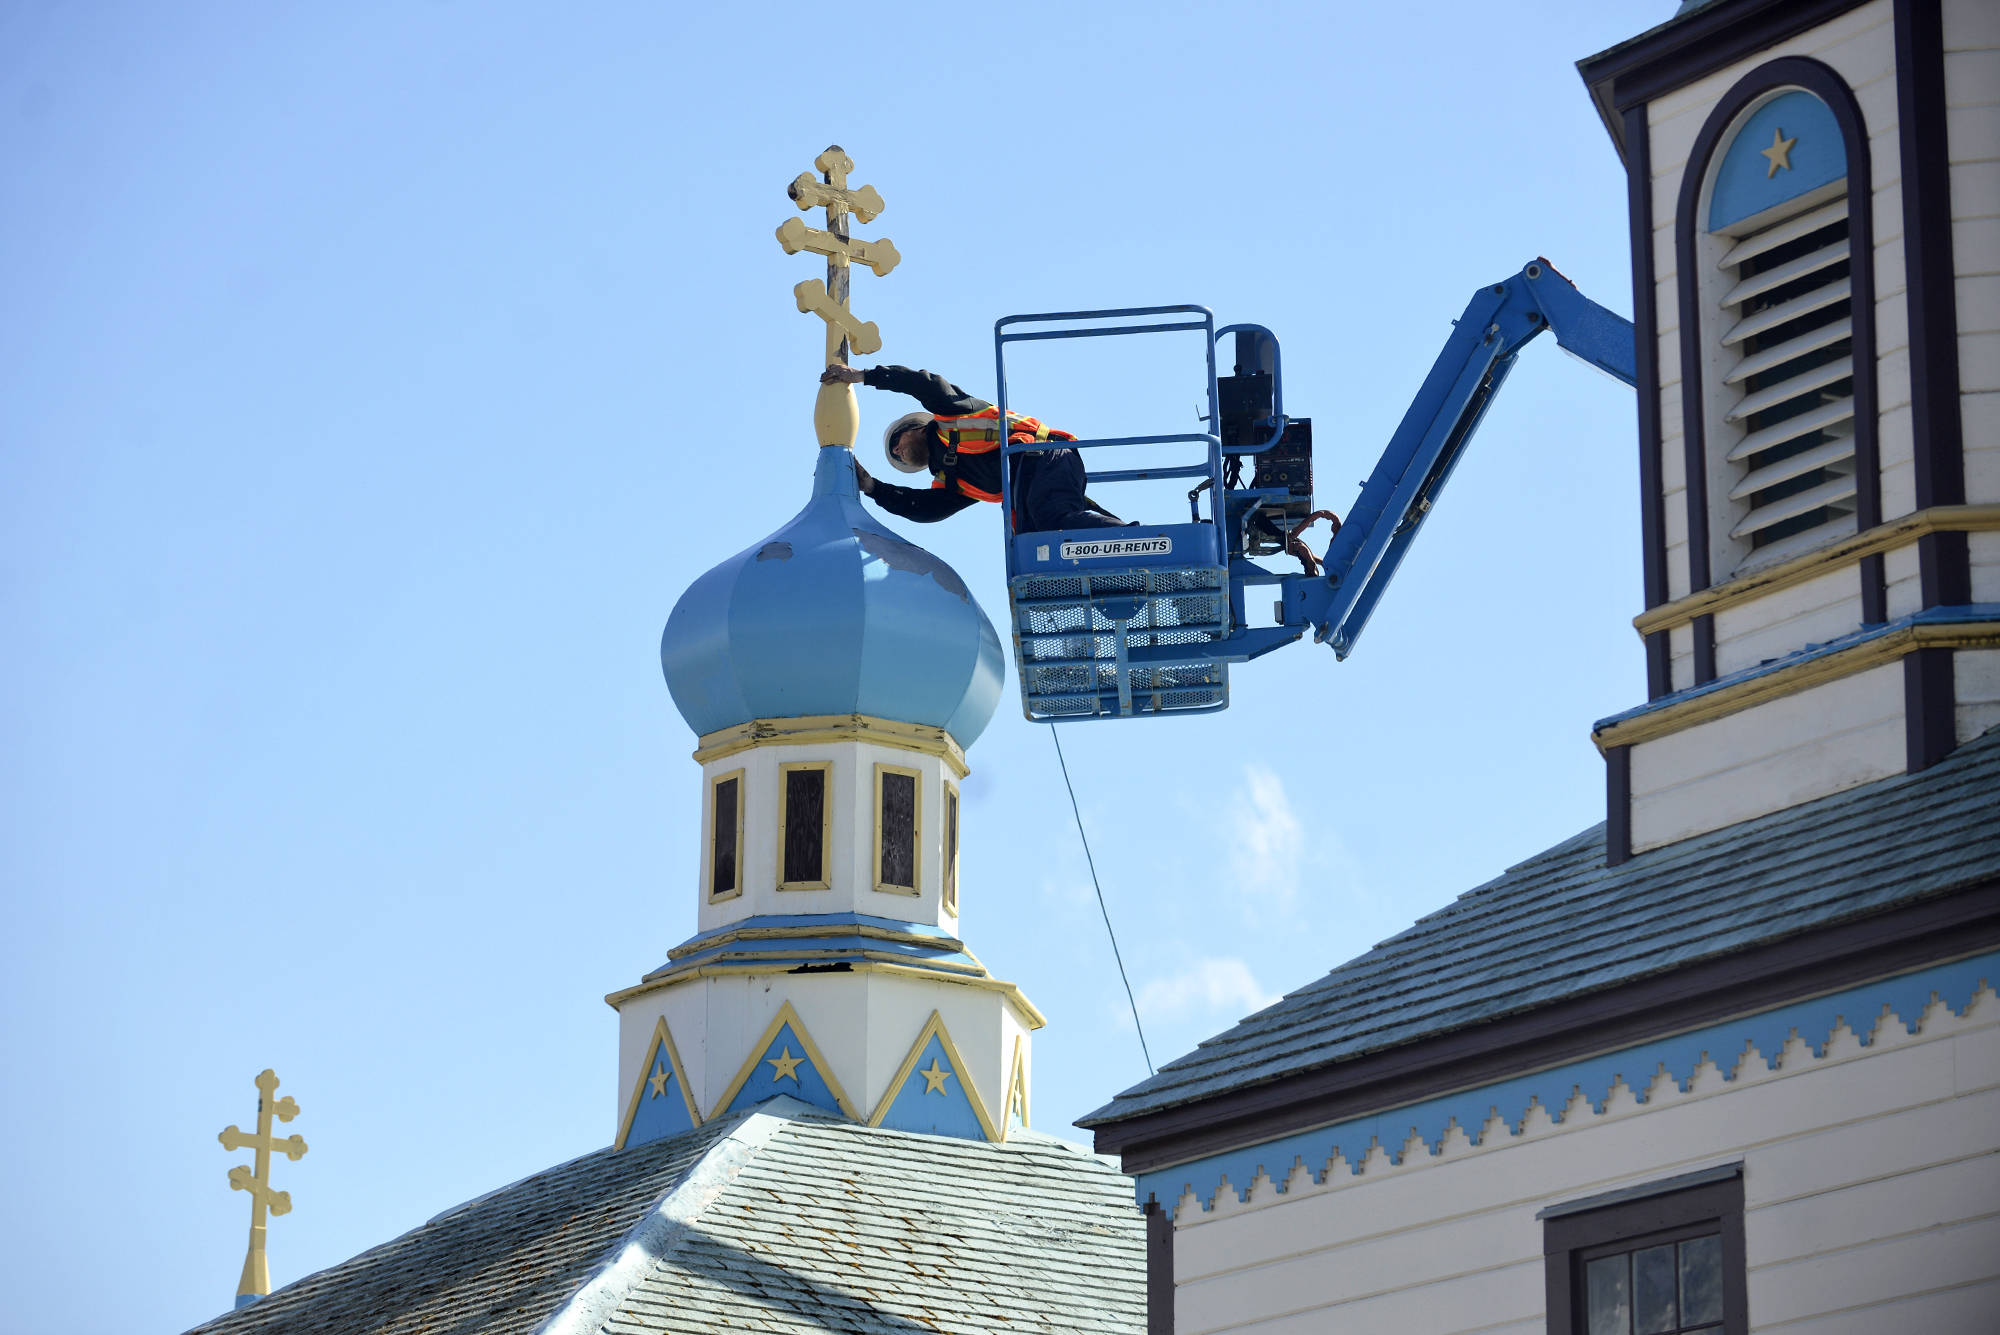 Glenn Beckmann of Rainproof Roofing inspects a weathered and tilting cross atop Kenai'sHoly Assumption of the Virgin Mary Russian Orthodox Church before removing it on Friday, May 4, 2018. Dorothy Gray , a Holy Assumption member and treasurer of the preservation nonprofit Russian Orthodox Sacred Sites in Alaska, said the church is now looking for local craftspeople interested in making replacements for the three old crosses. (Ben Boettger/Peninsula Clarion)